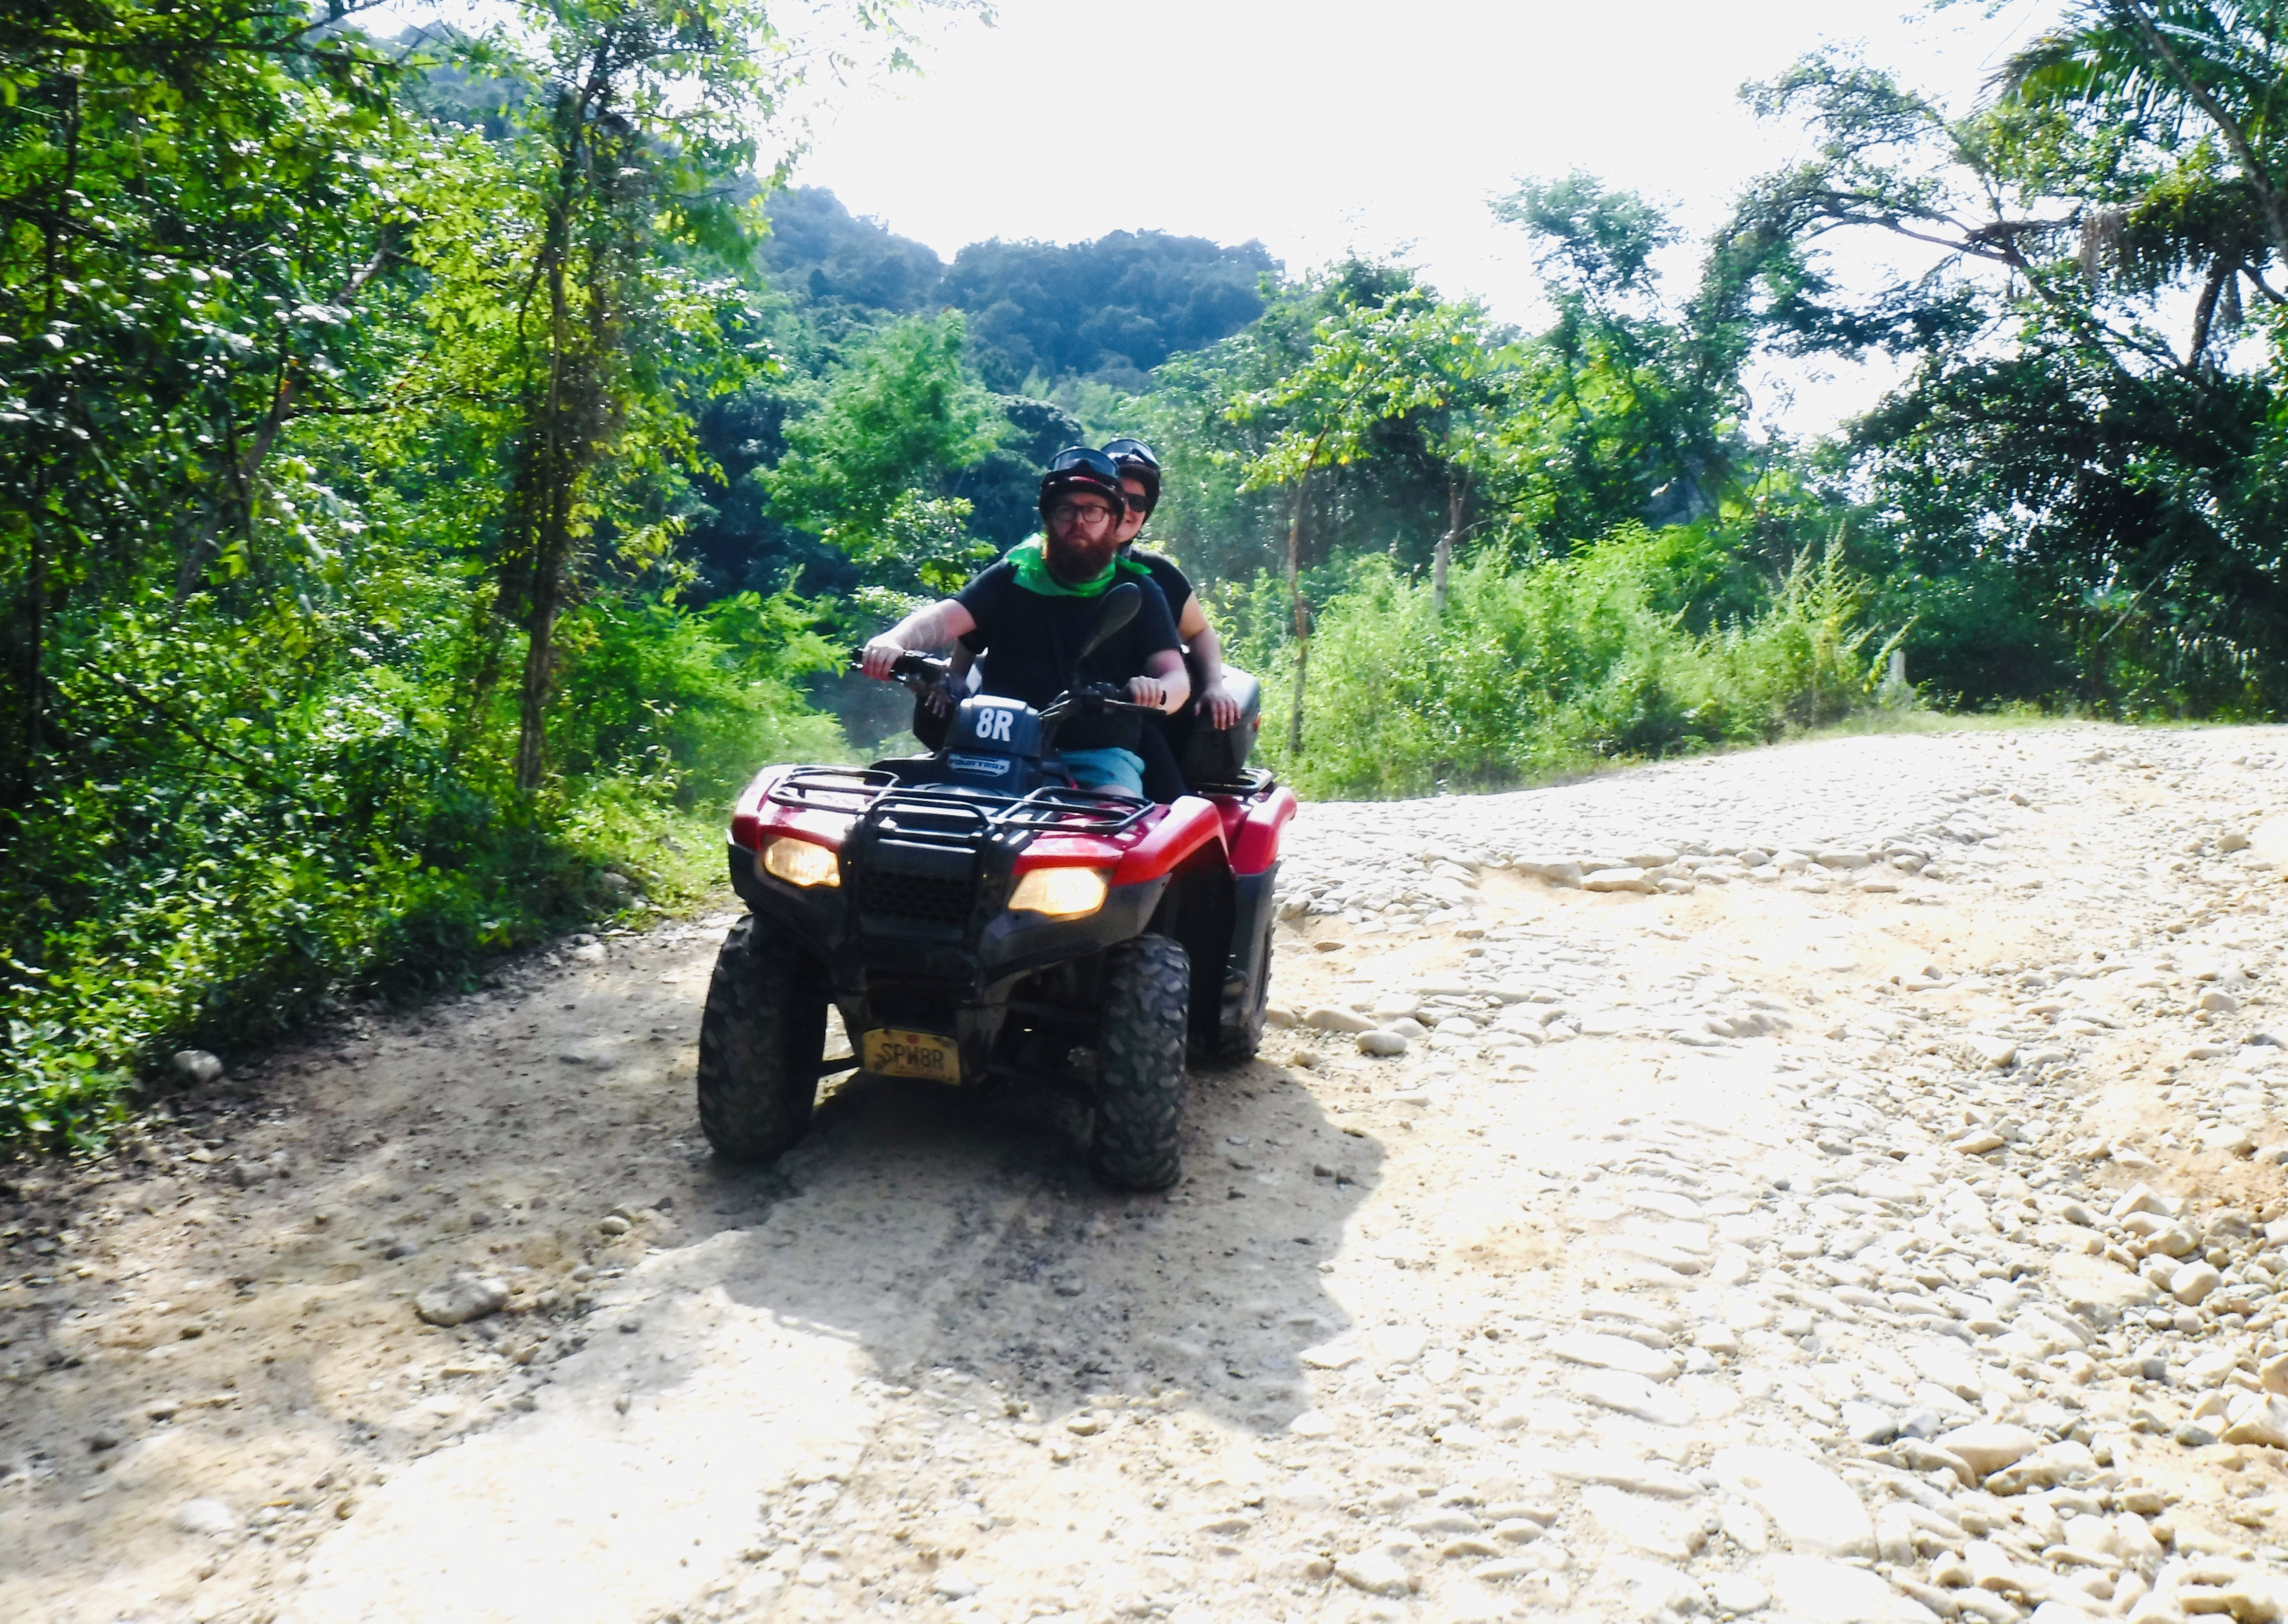 Scott and I on an atv, driving on the dirt road to the Predator movie set